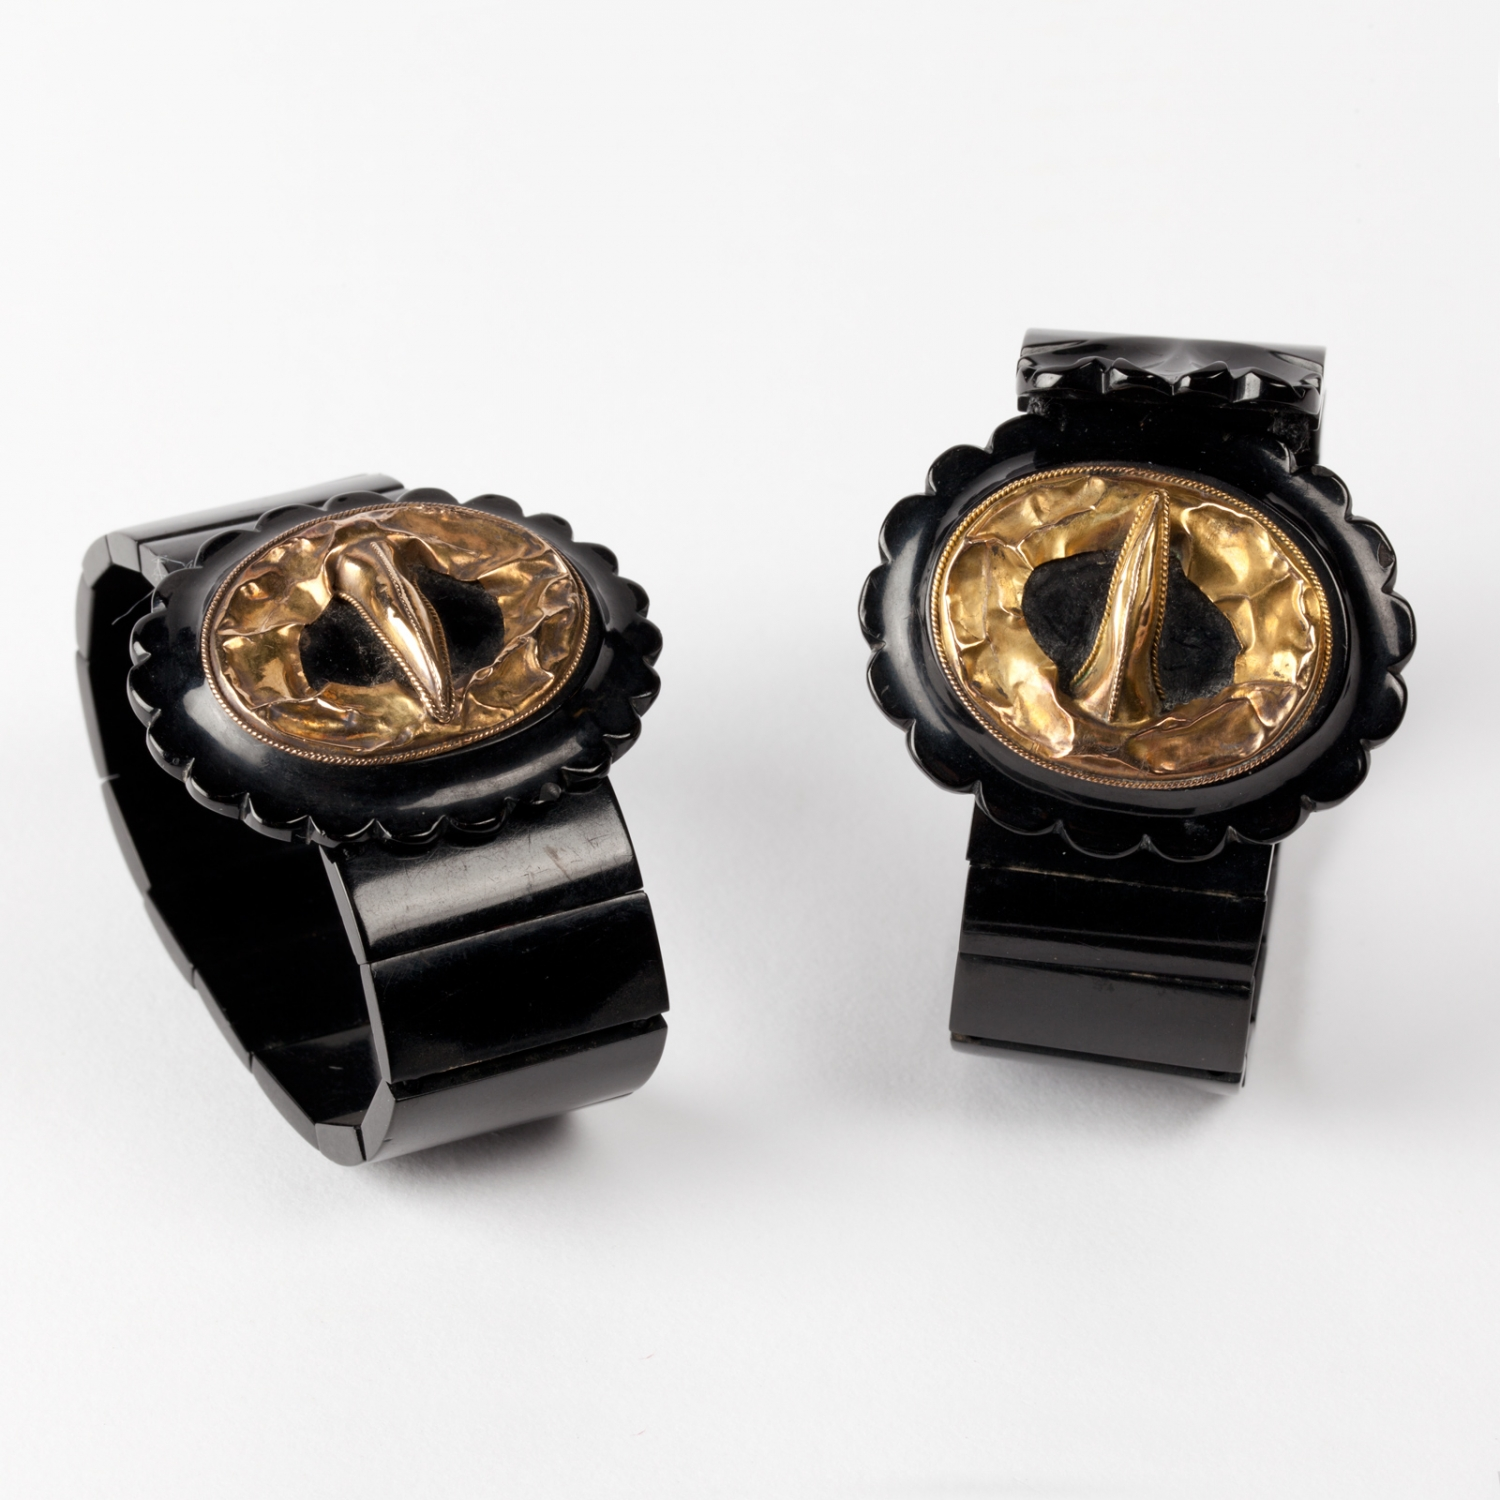 A pair of Whitby jet strap and buckle style bracelets, possibly incomplete. Made in England, 1860s.